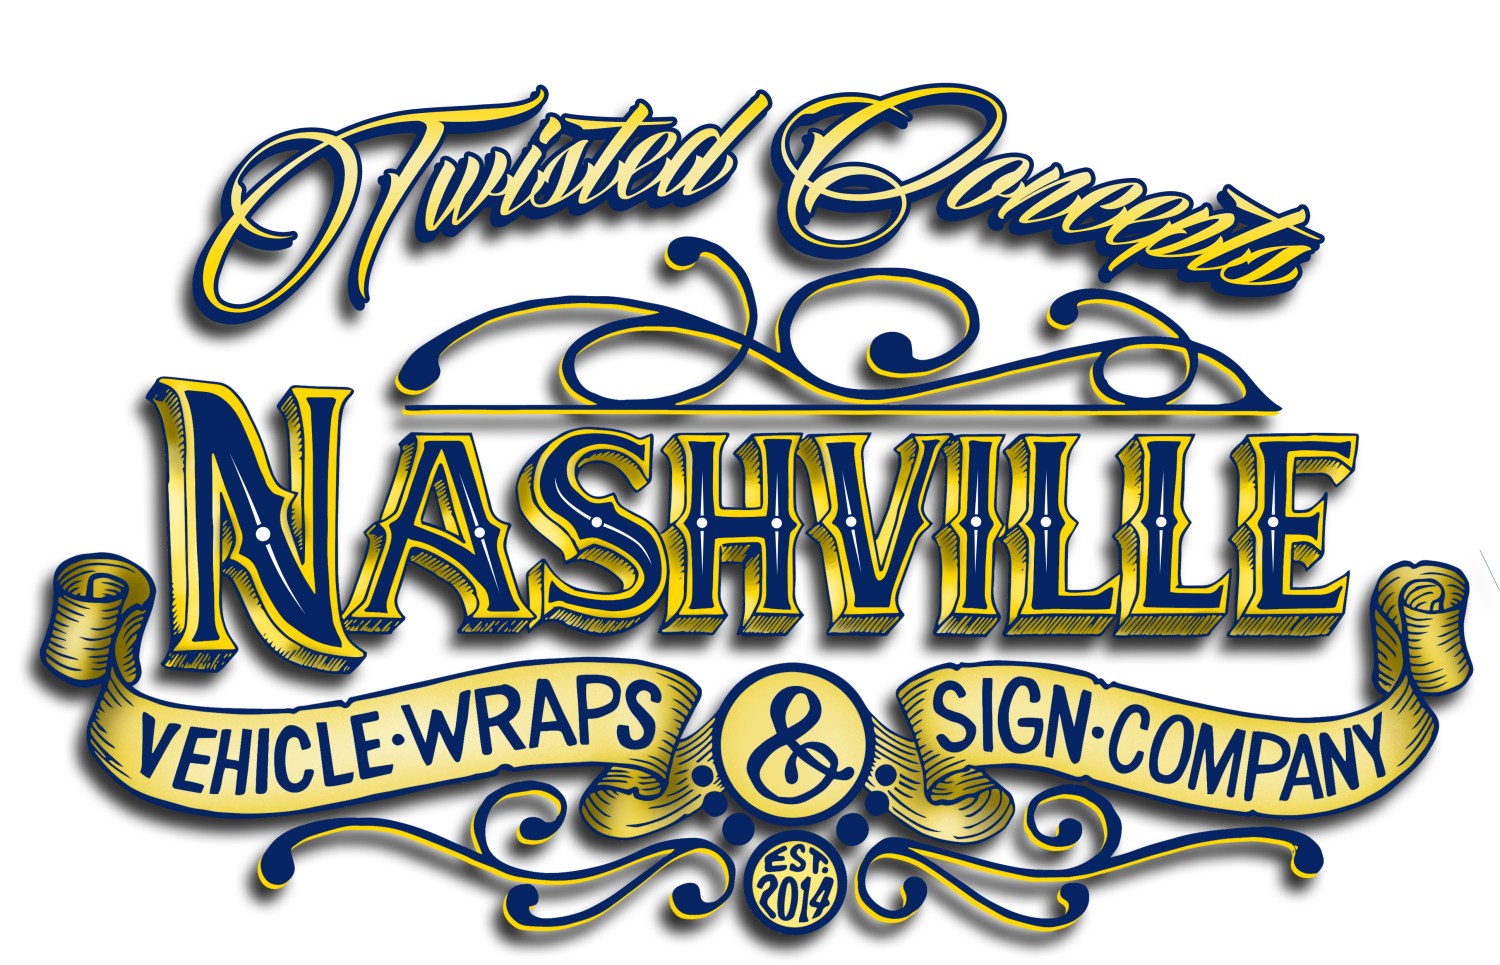 Fresh Vehicle Wraps & Tour Bus Wraps in Nashville, Tennessee VR08